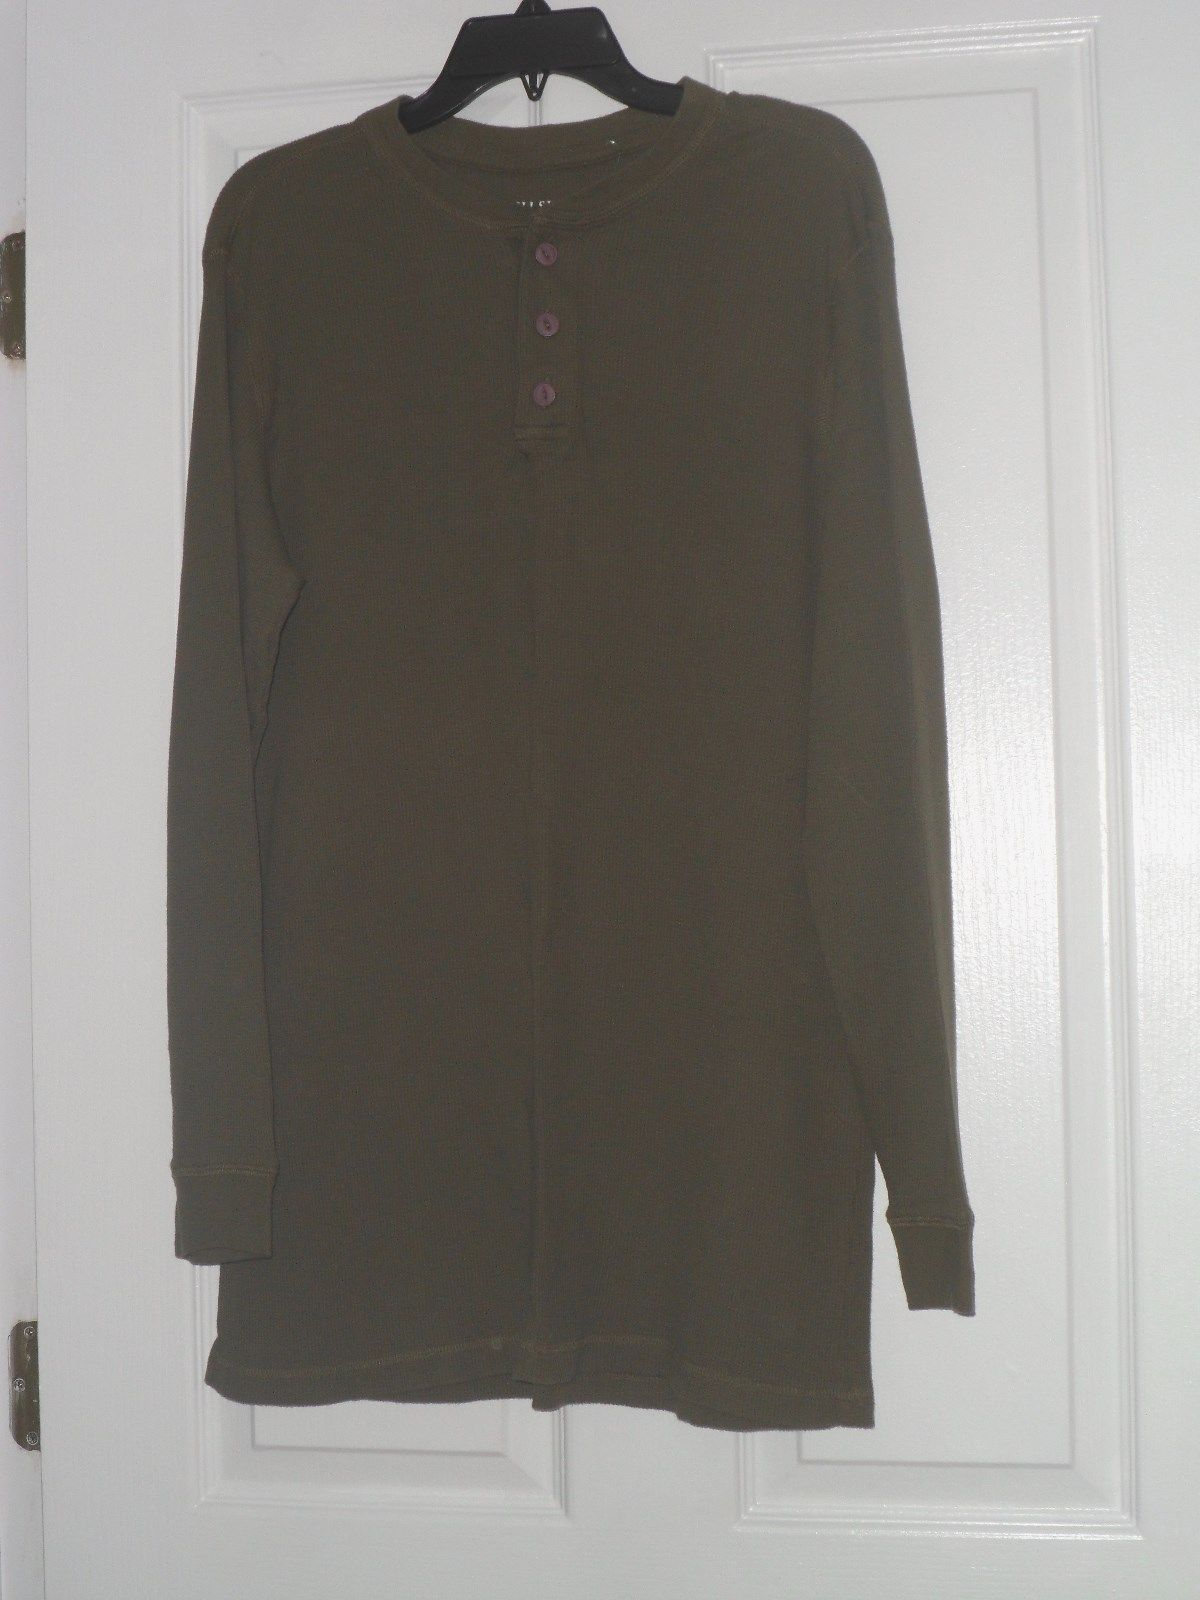 HIGH SIERRA MEN'S THERMAL SHIRT SIZE XL OLIVE GREEN LONG SLEEVES NWT - $16.49